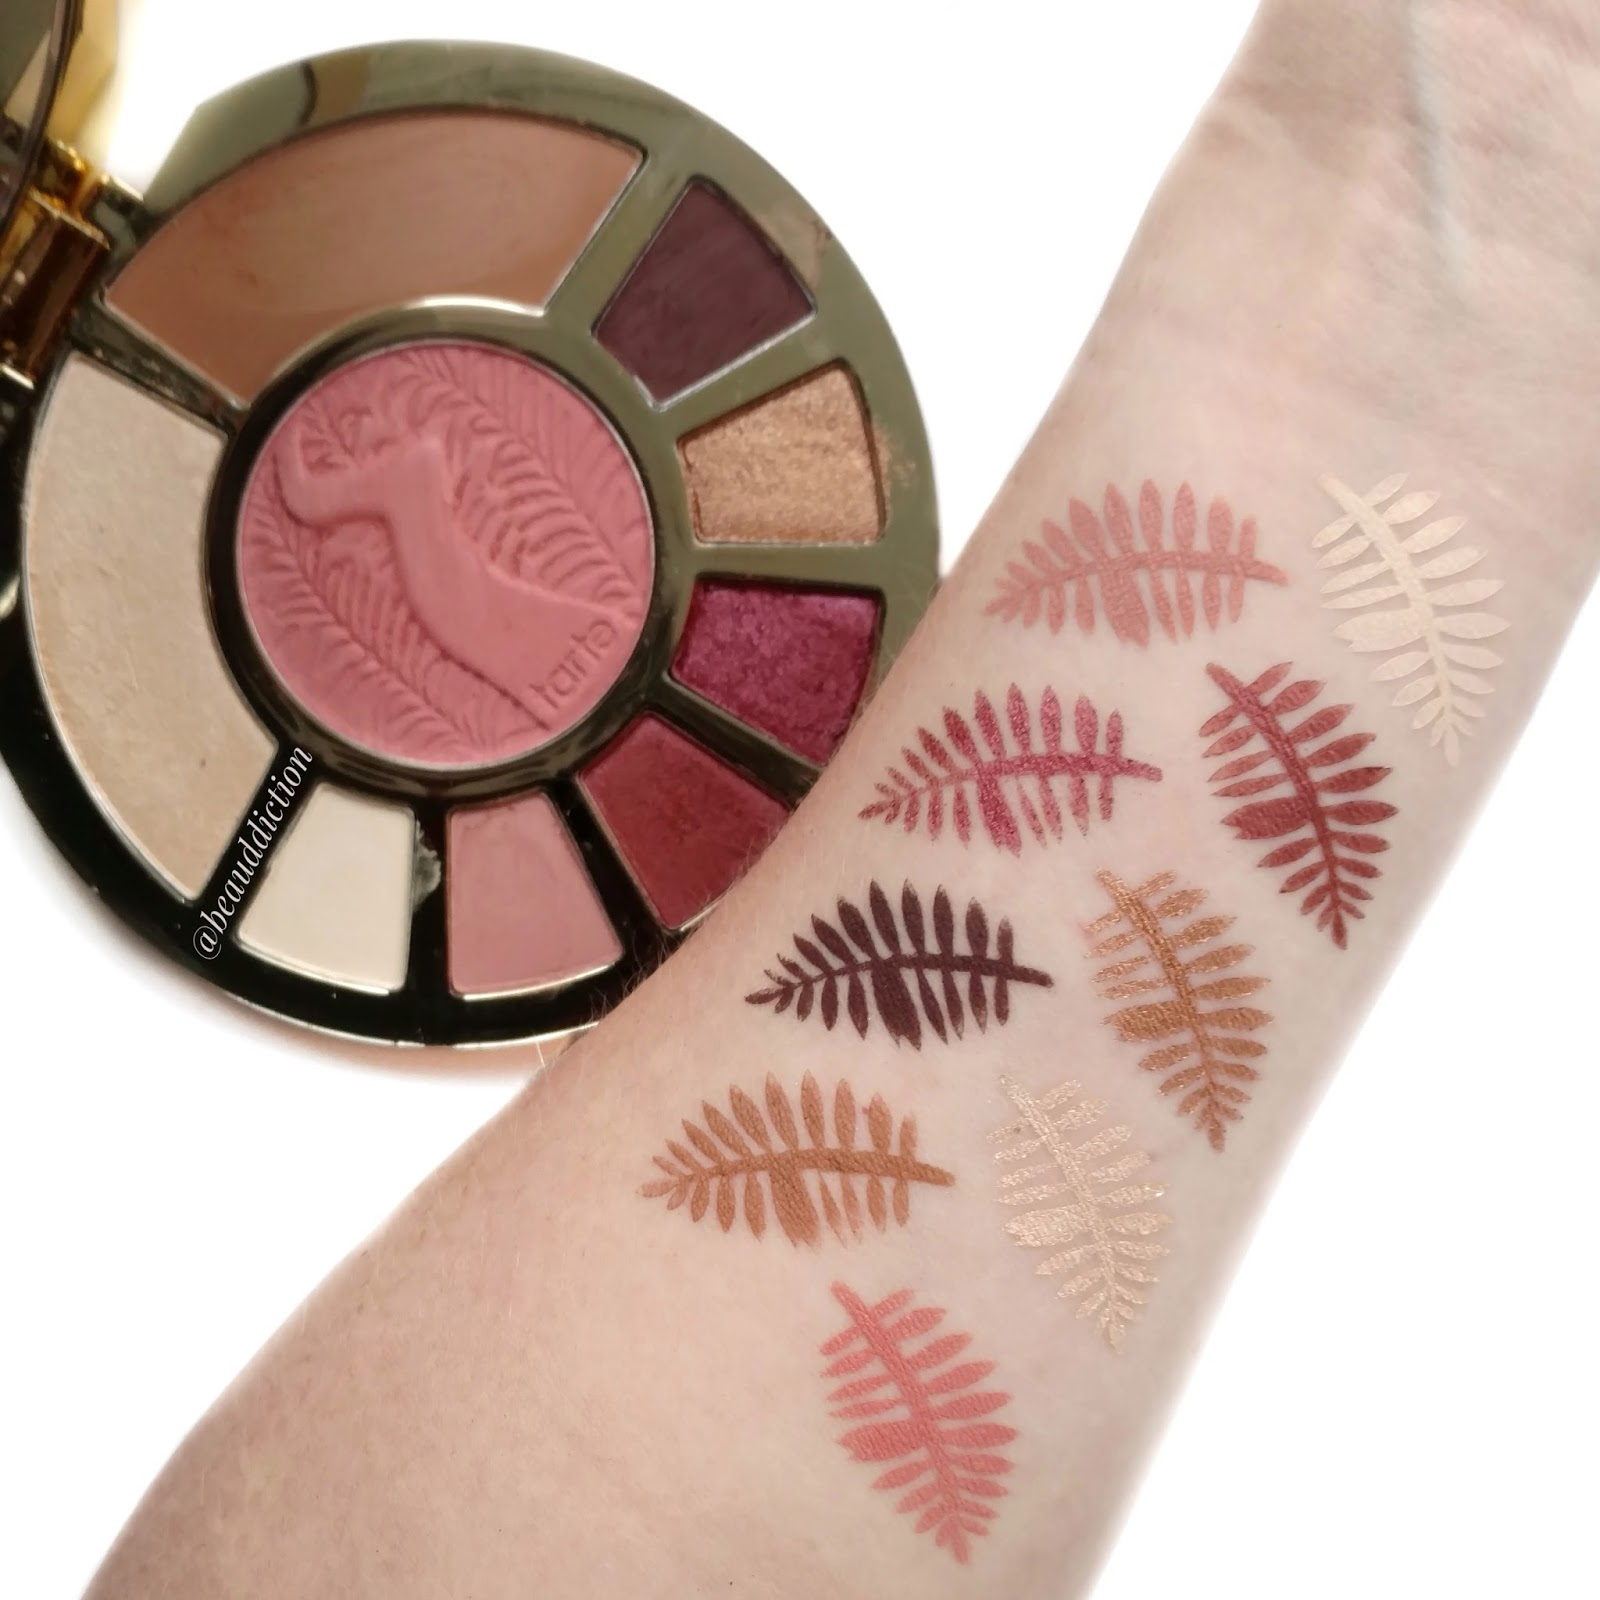 tarte ladies night swatches